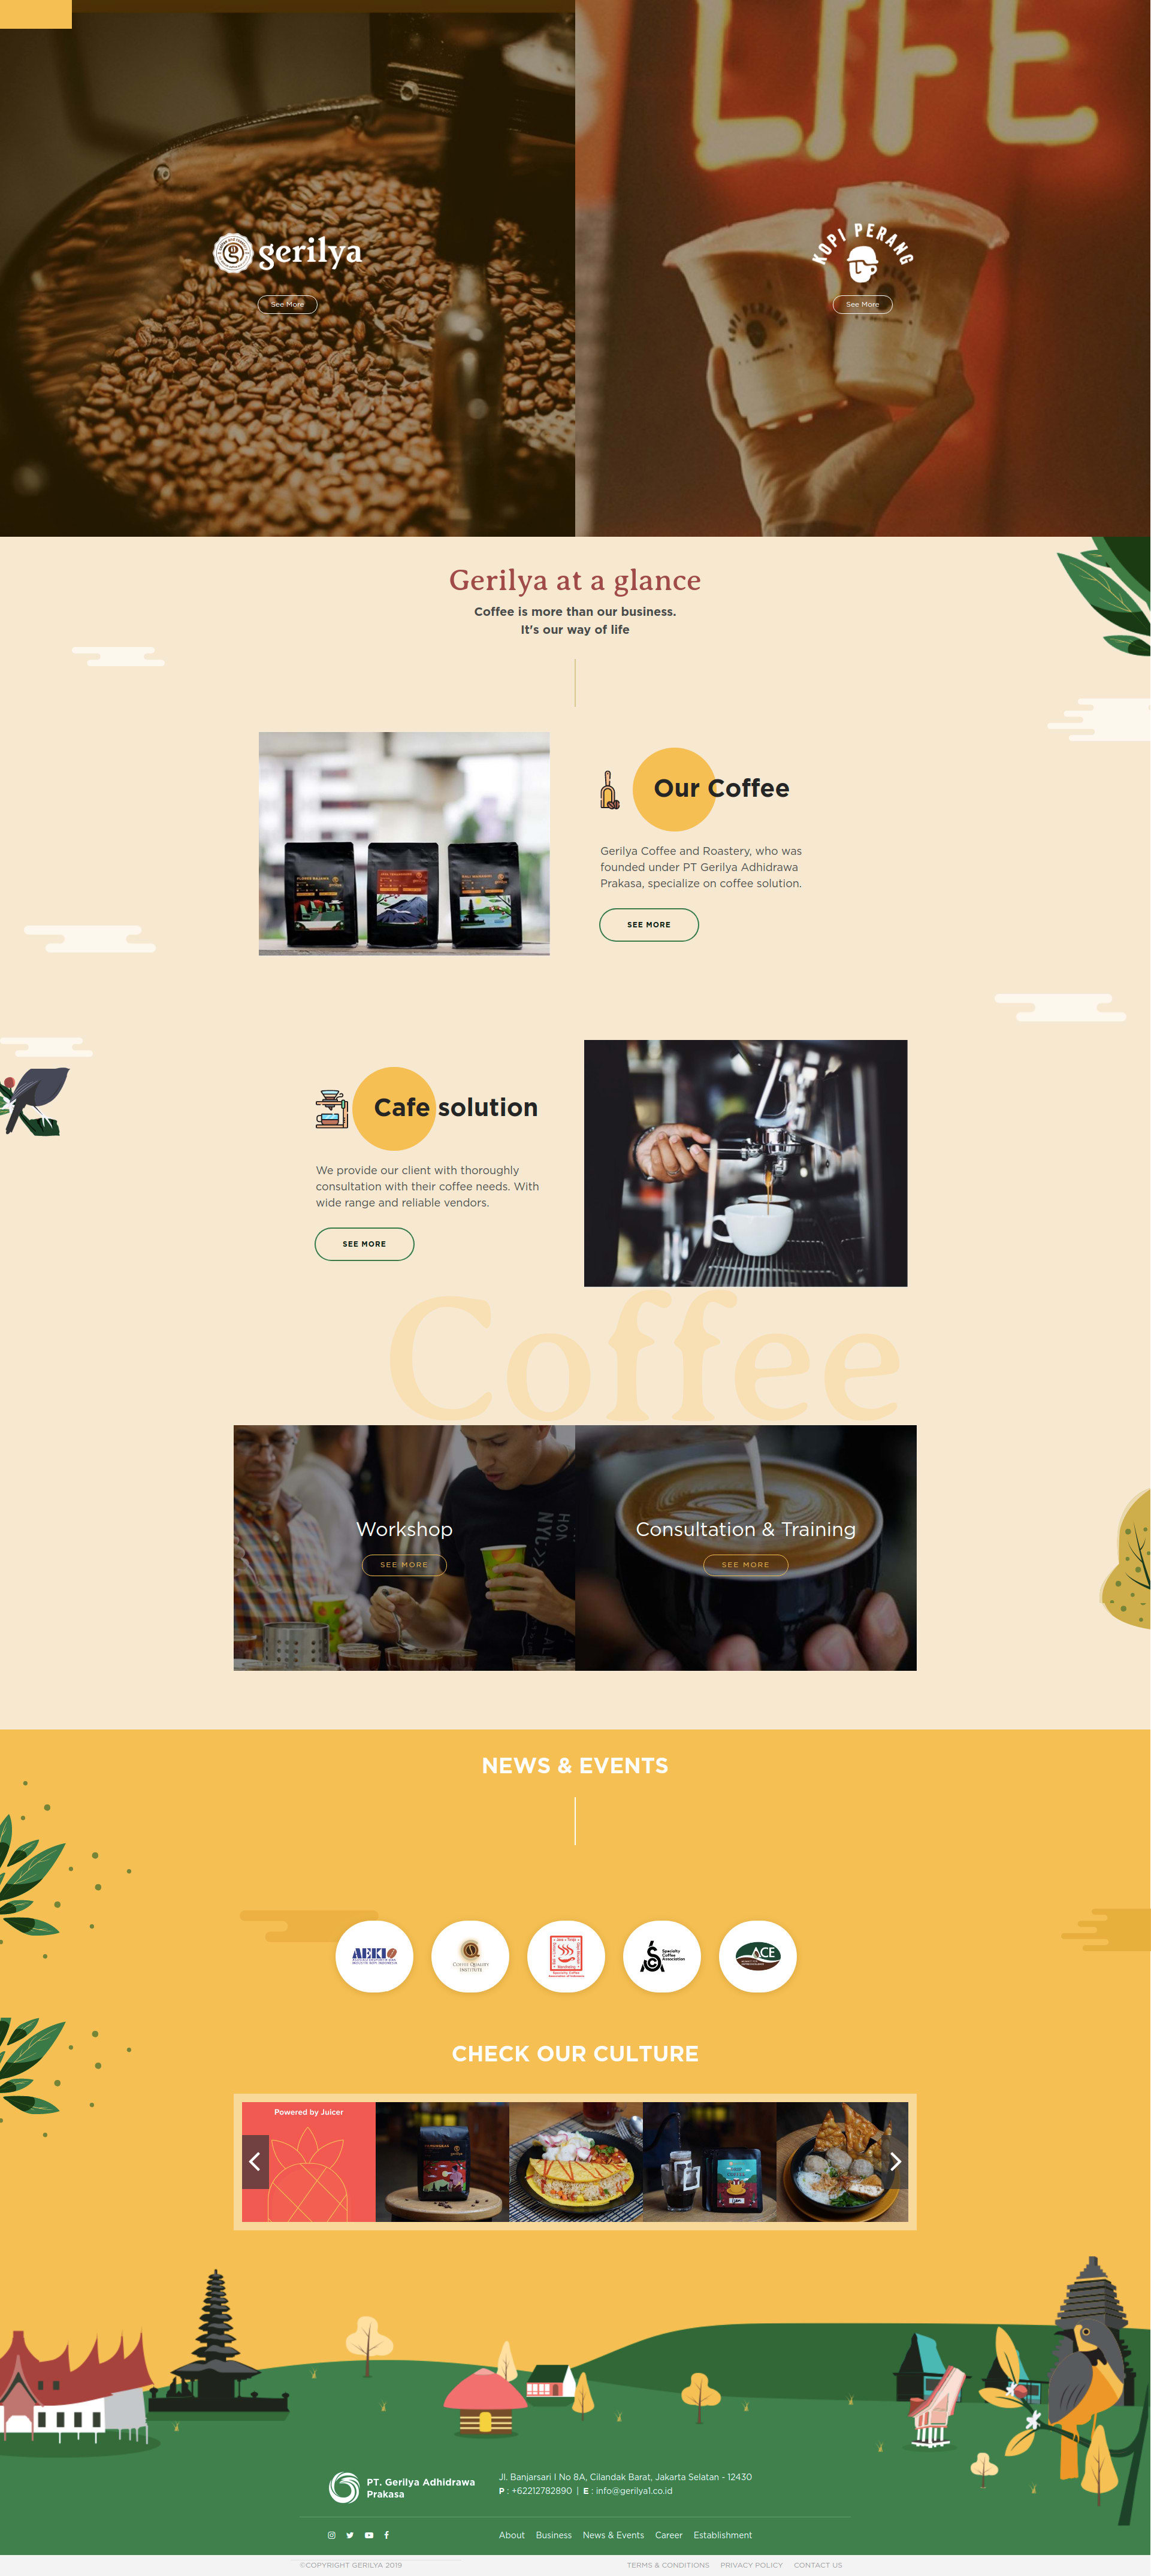 portfolio popout.id web development agency jakarta client Gerilya Coffee Website